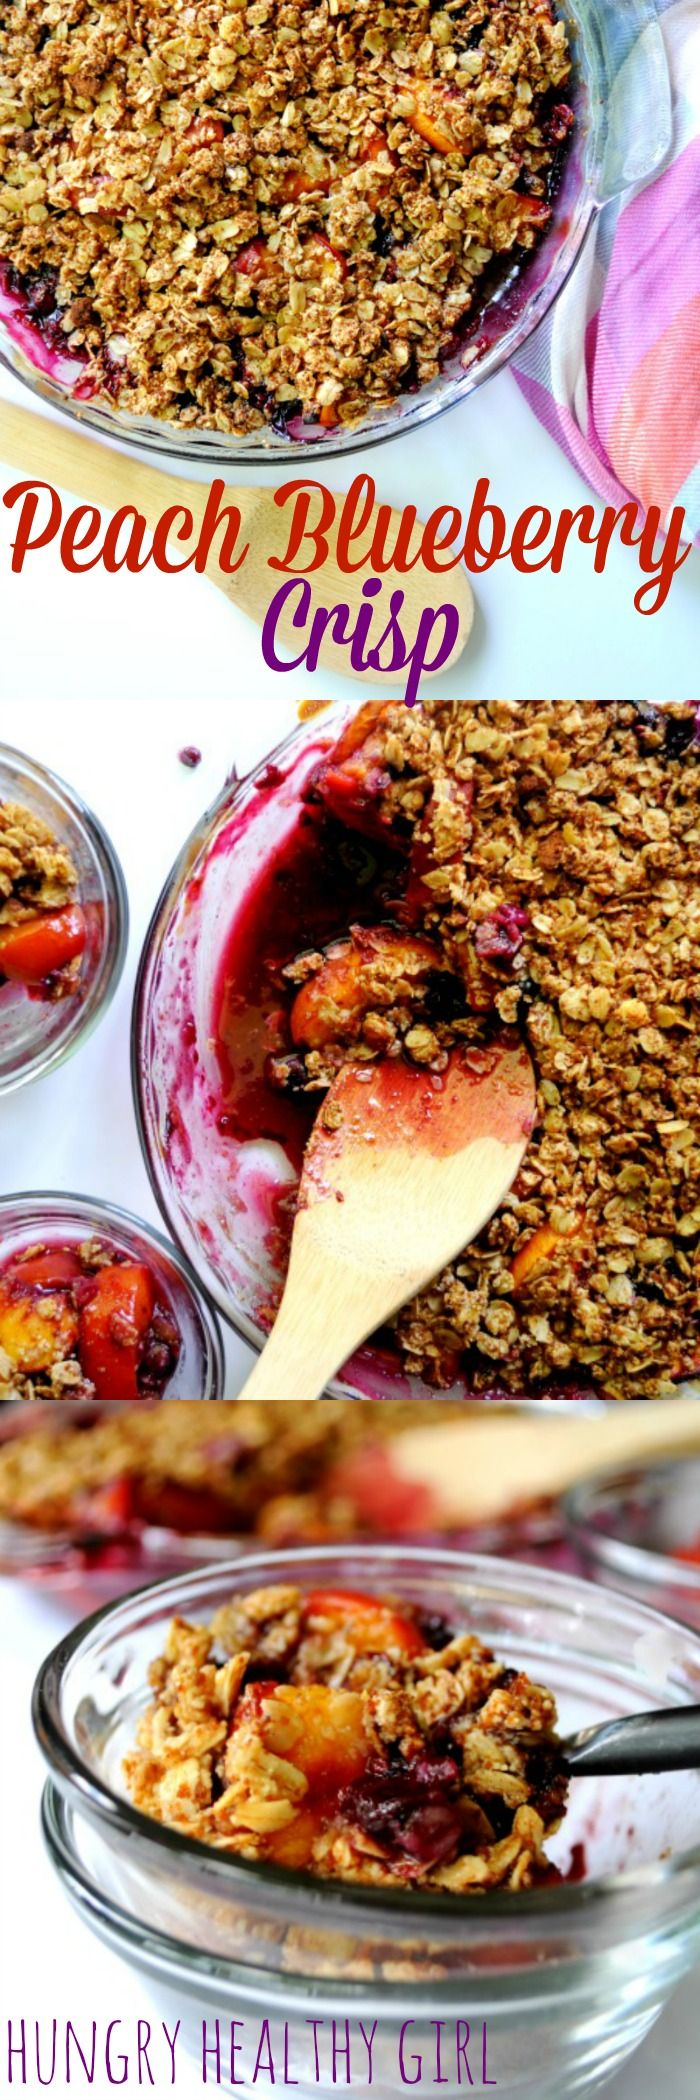 Easy Peach Blueberry Crisp- delicious summer dessert made with all-natural ingredients. A family favorite! #vegan #glutenfree